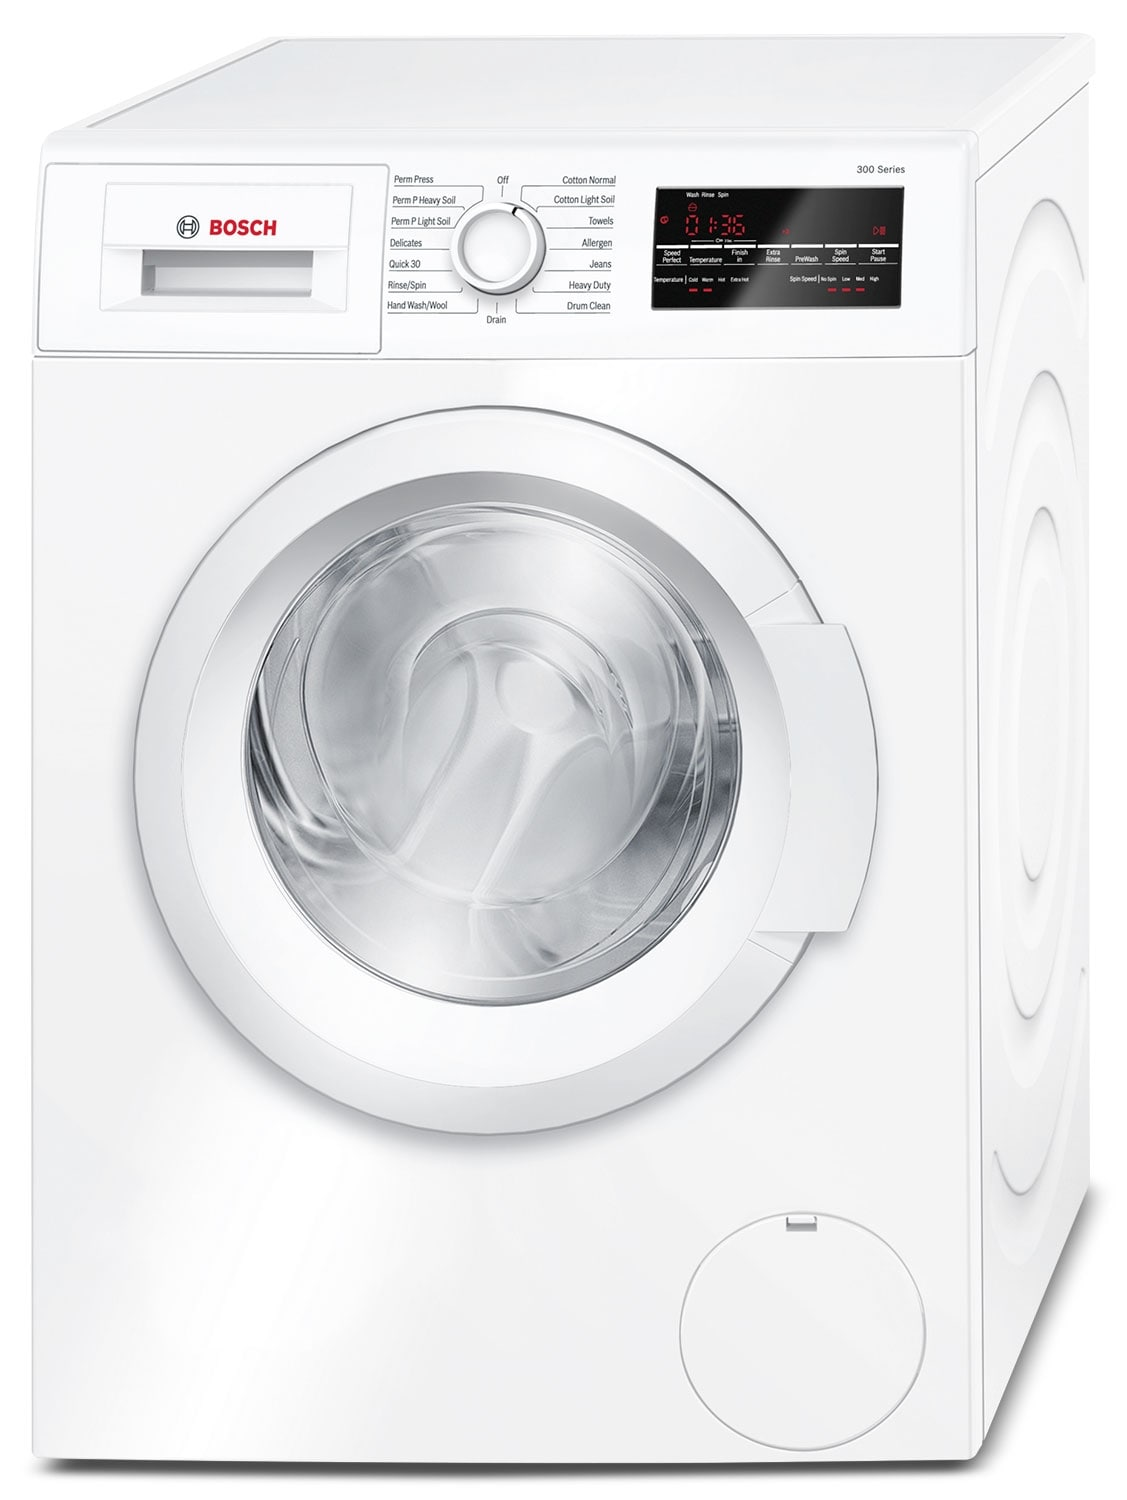 Bosch 2 2 Cu Ft Compact Washer And 4 0 Cu Ft Compact